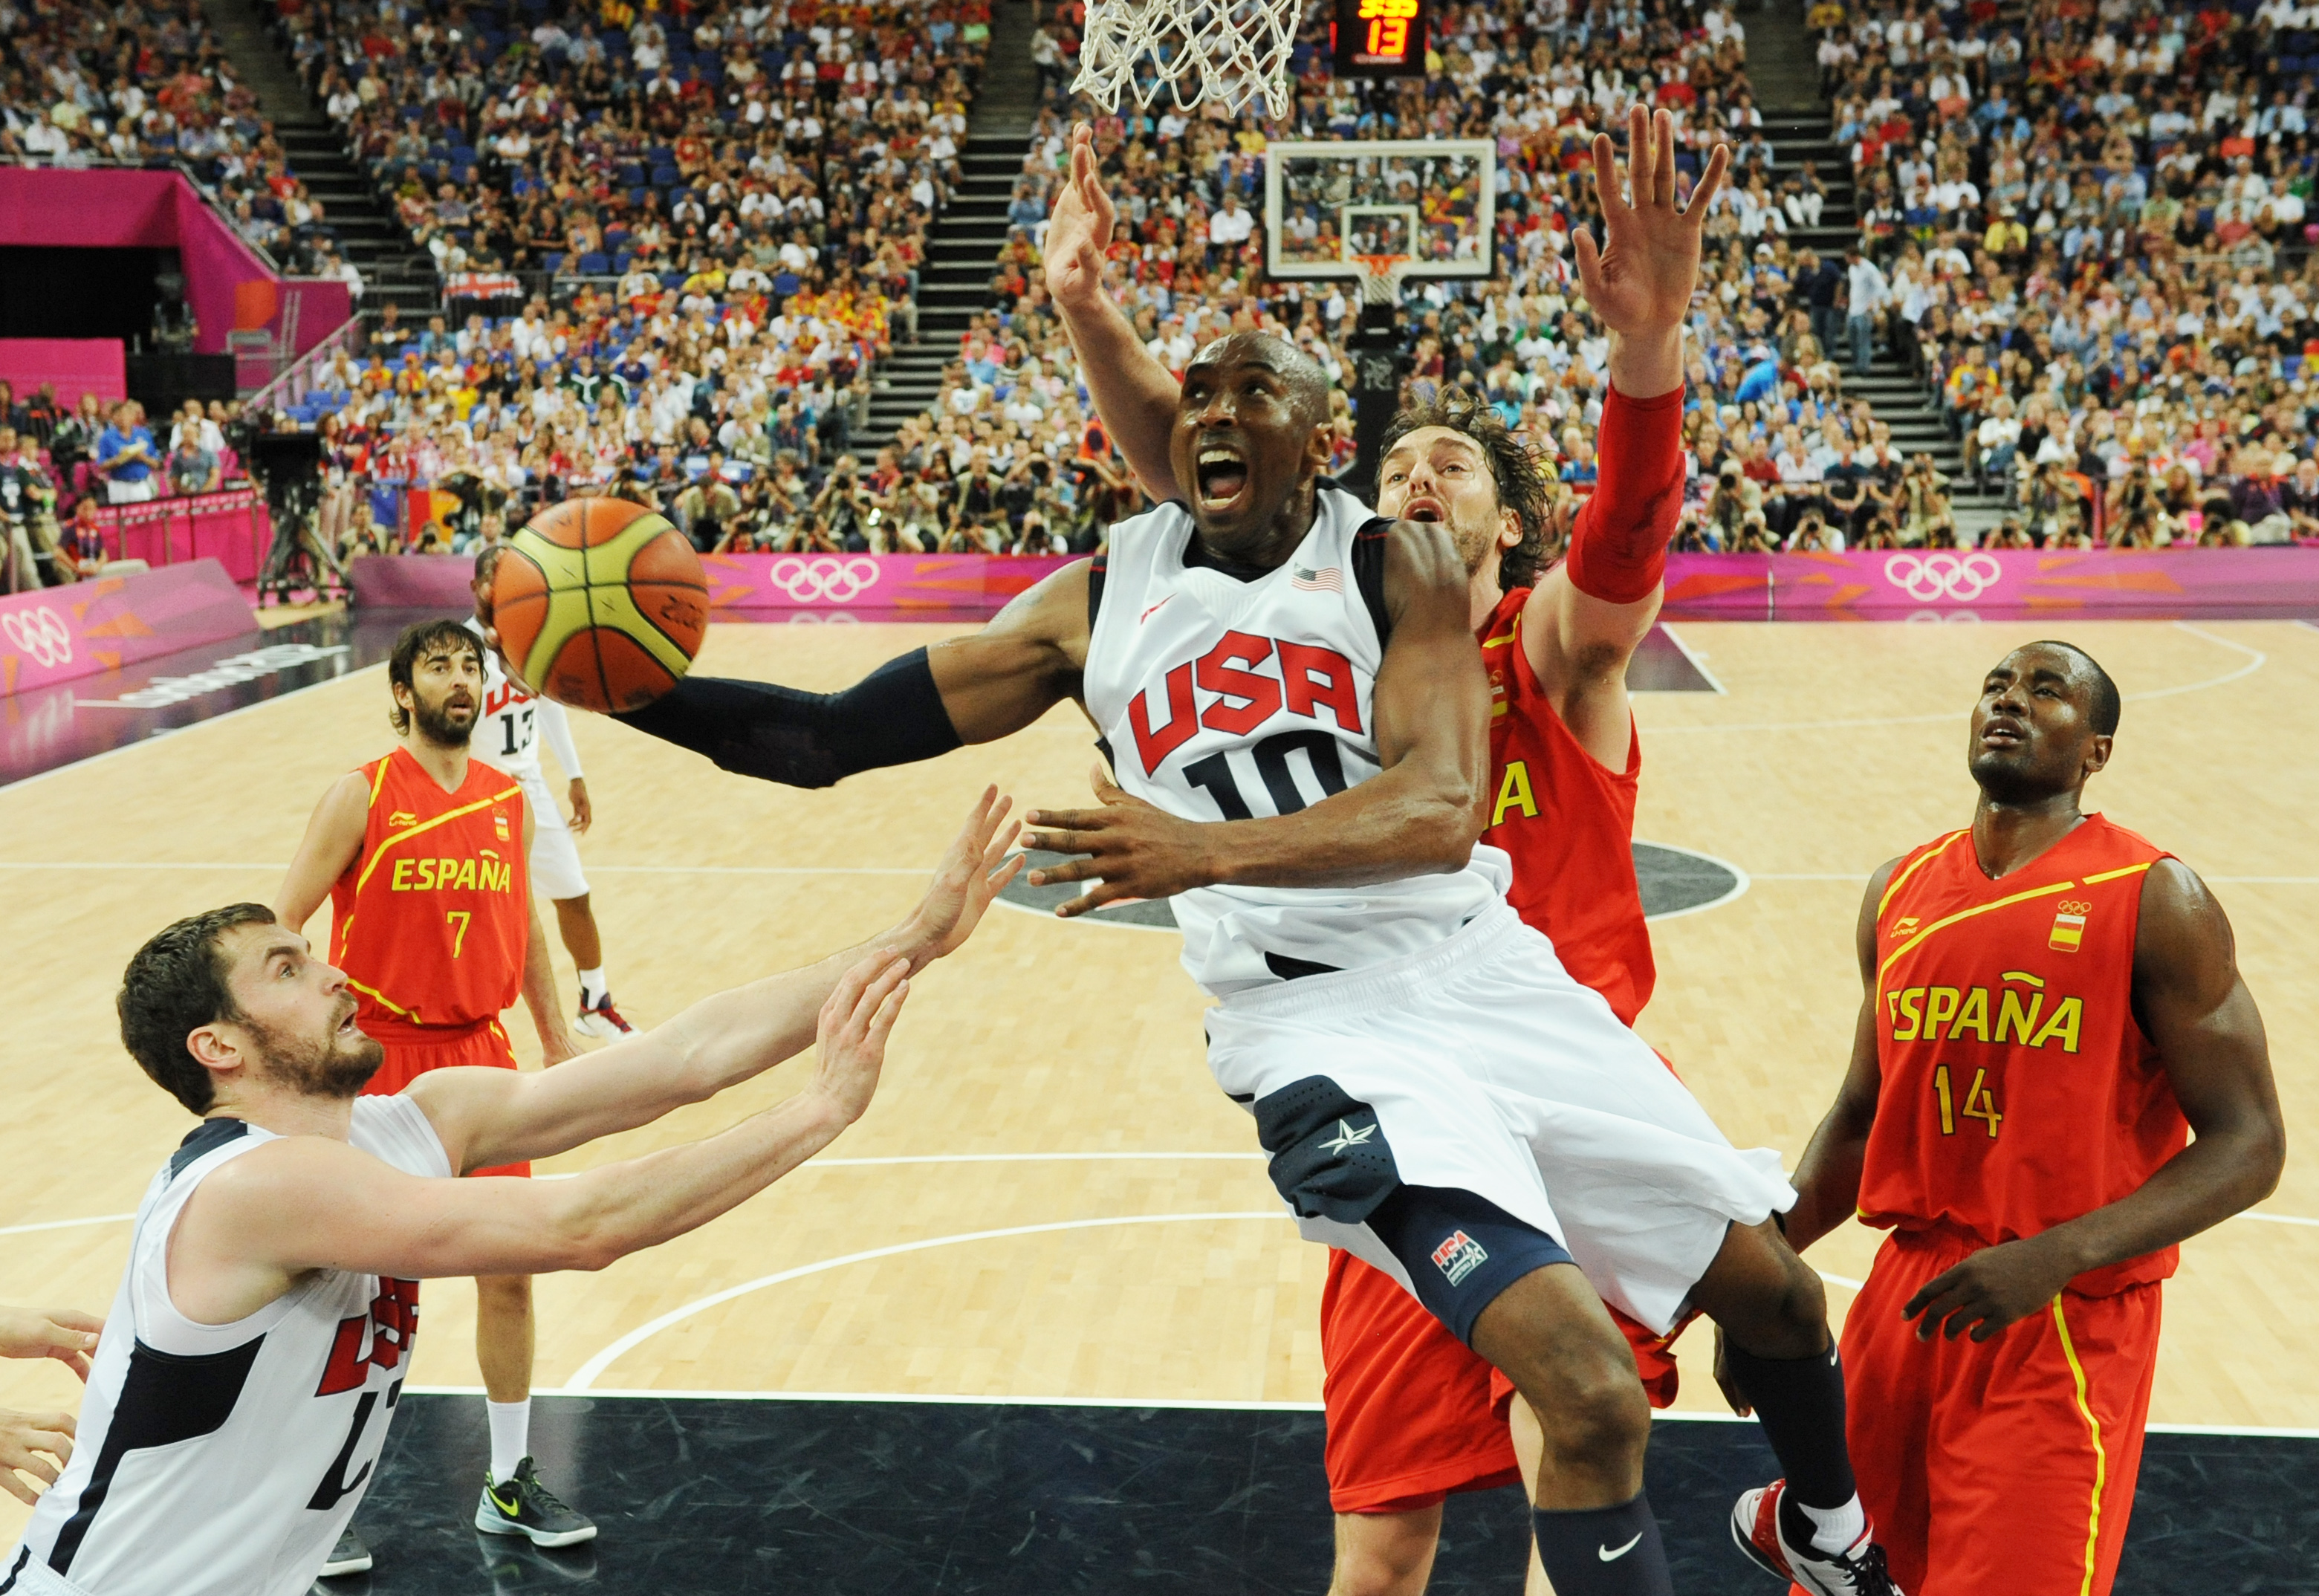 (FILES) In this file photo taken August 12, 2012 US guard Kobe Bryant jumps to score during the London 2012 Olympic Games men's gold medal basketball game between USA and Spain at the North Greenwich Arena in London. Kobe Bryant says he still loves competition, but admits that his body can no longer handle the rigors of professional basketball as he announced on November 29, 2015 that this will be his final NBA season. AFP PHOTO / MARK RALSTON / AFP / POOL / MARK RALSTON